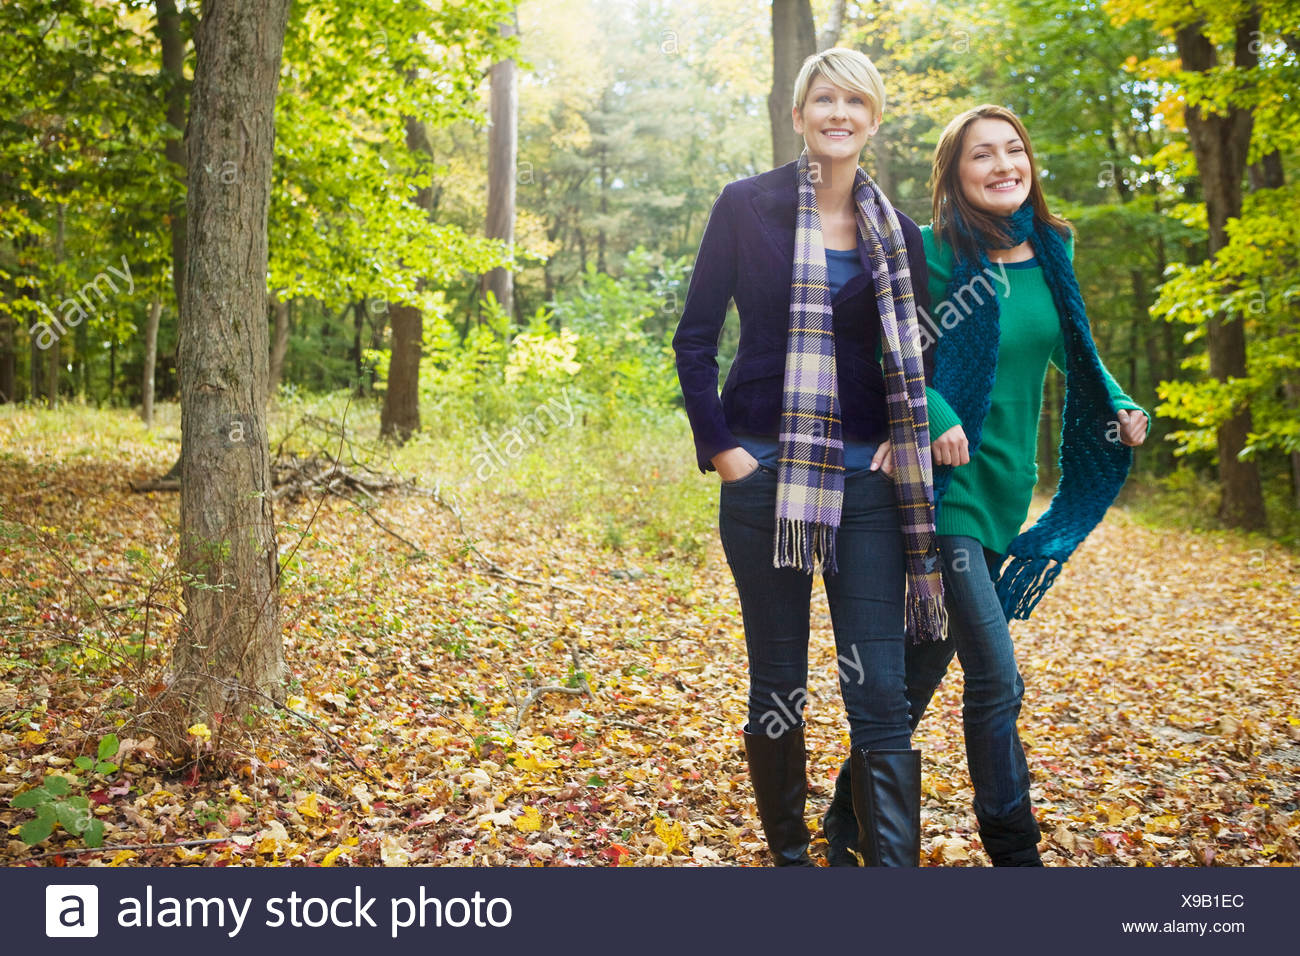 Friends walking in forest - Stock Image